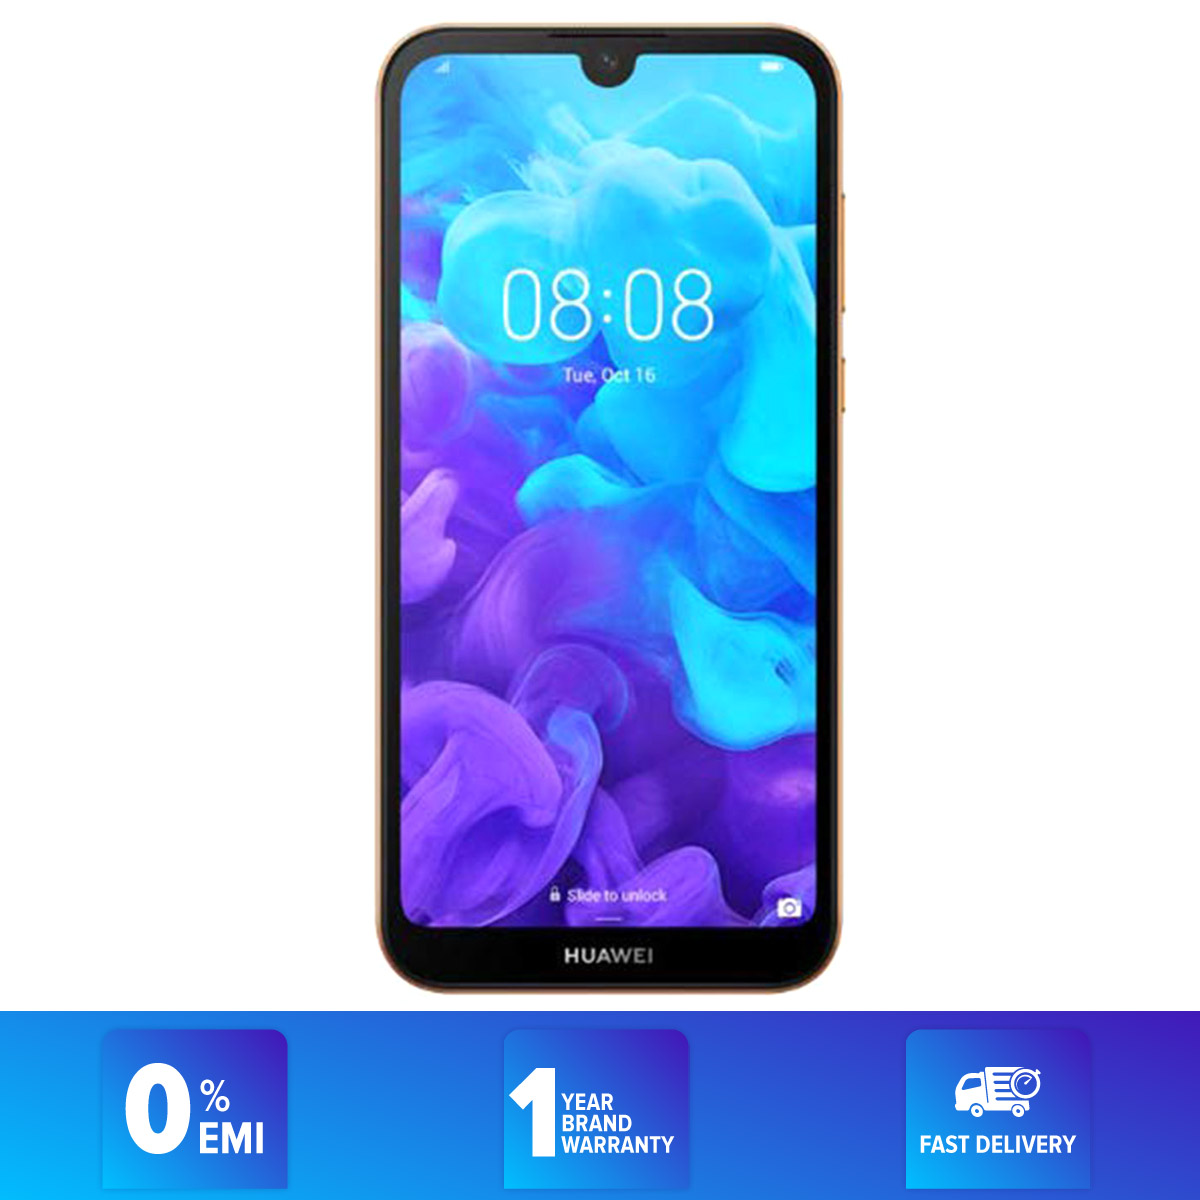 Huawei  Y5 2019 - Smartphone - 5.71  - 2GB RAM - 32GB ROM - 13MP Camera